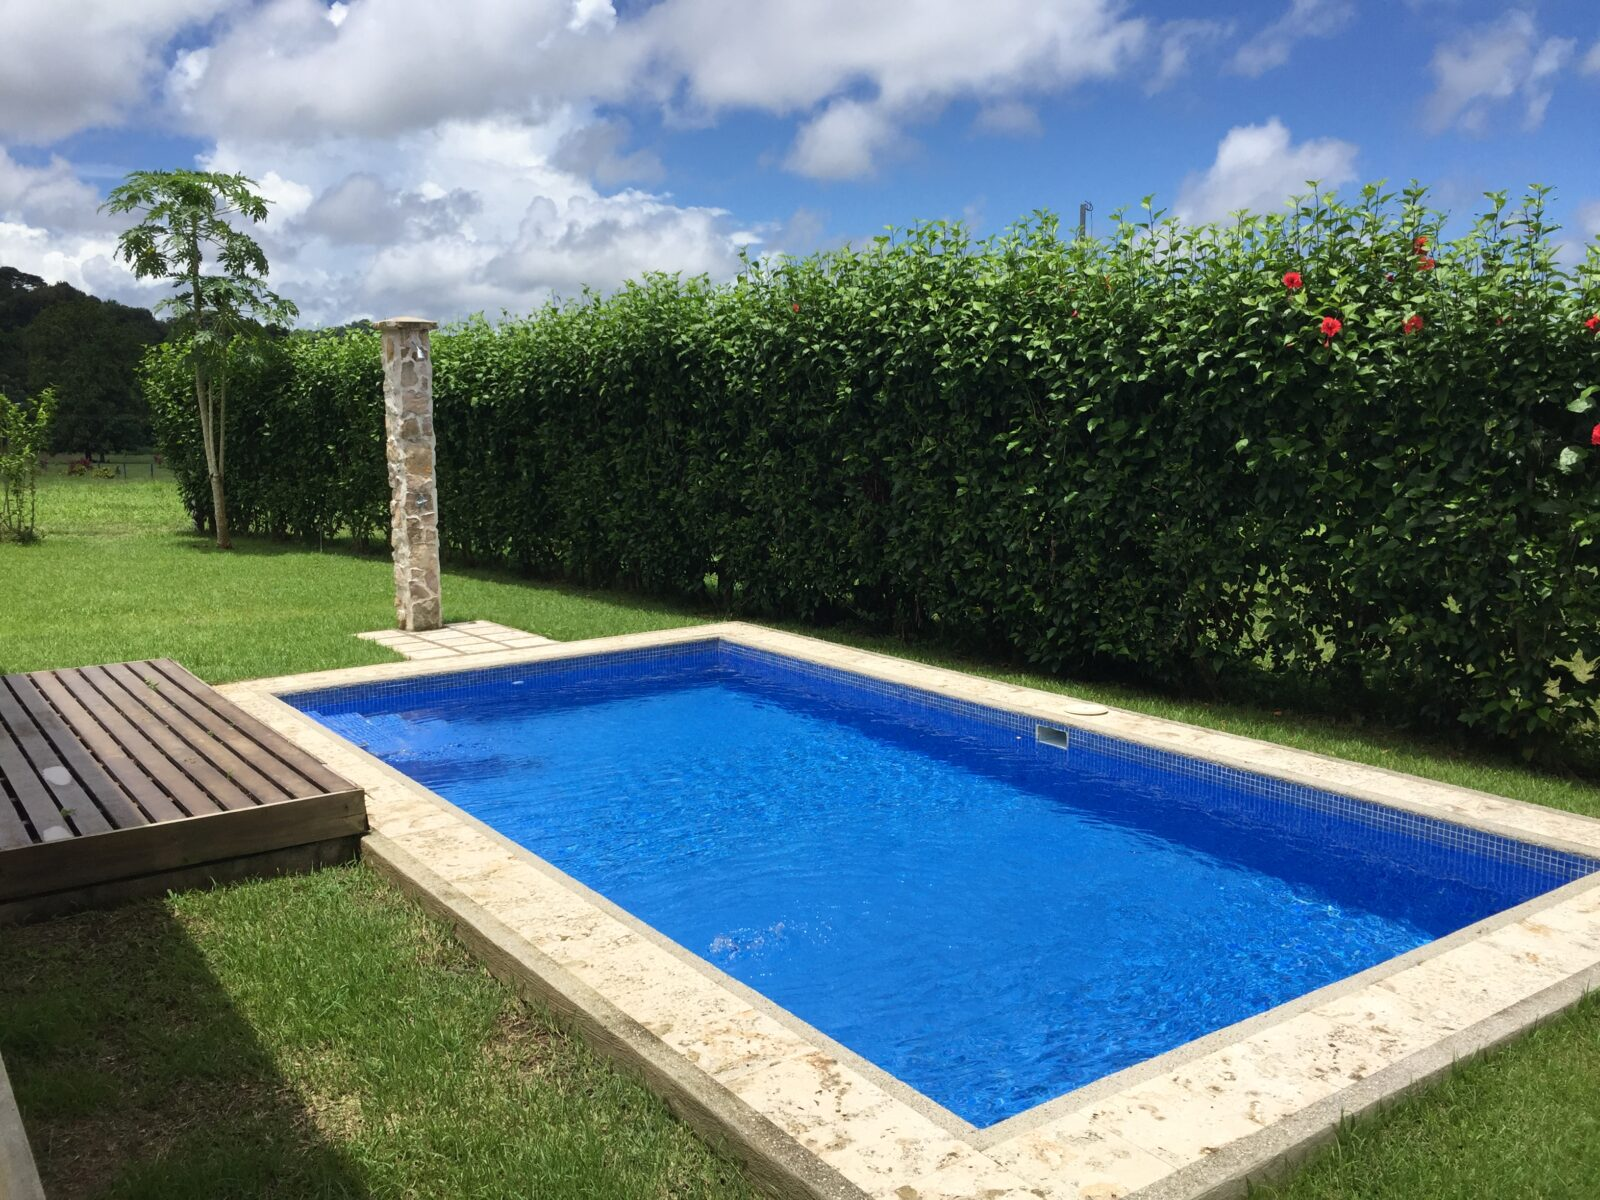 trogon pool villa rental costa rica